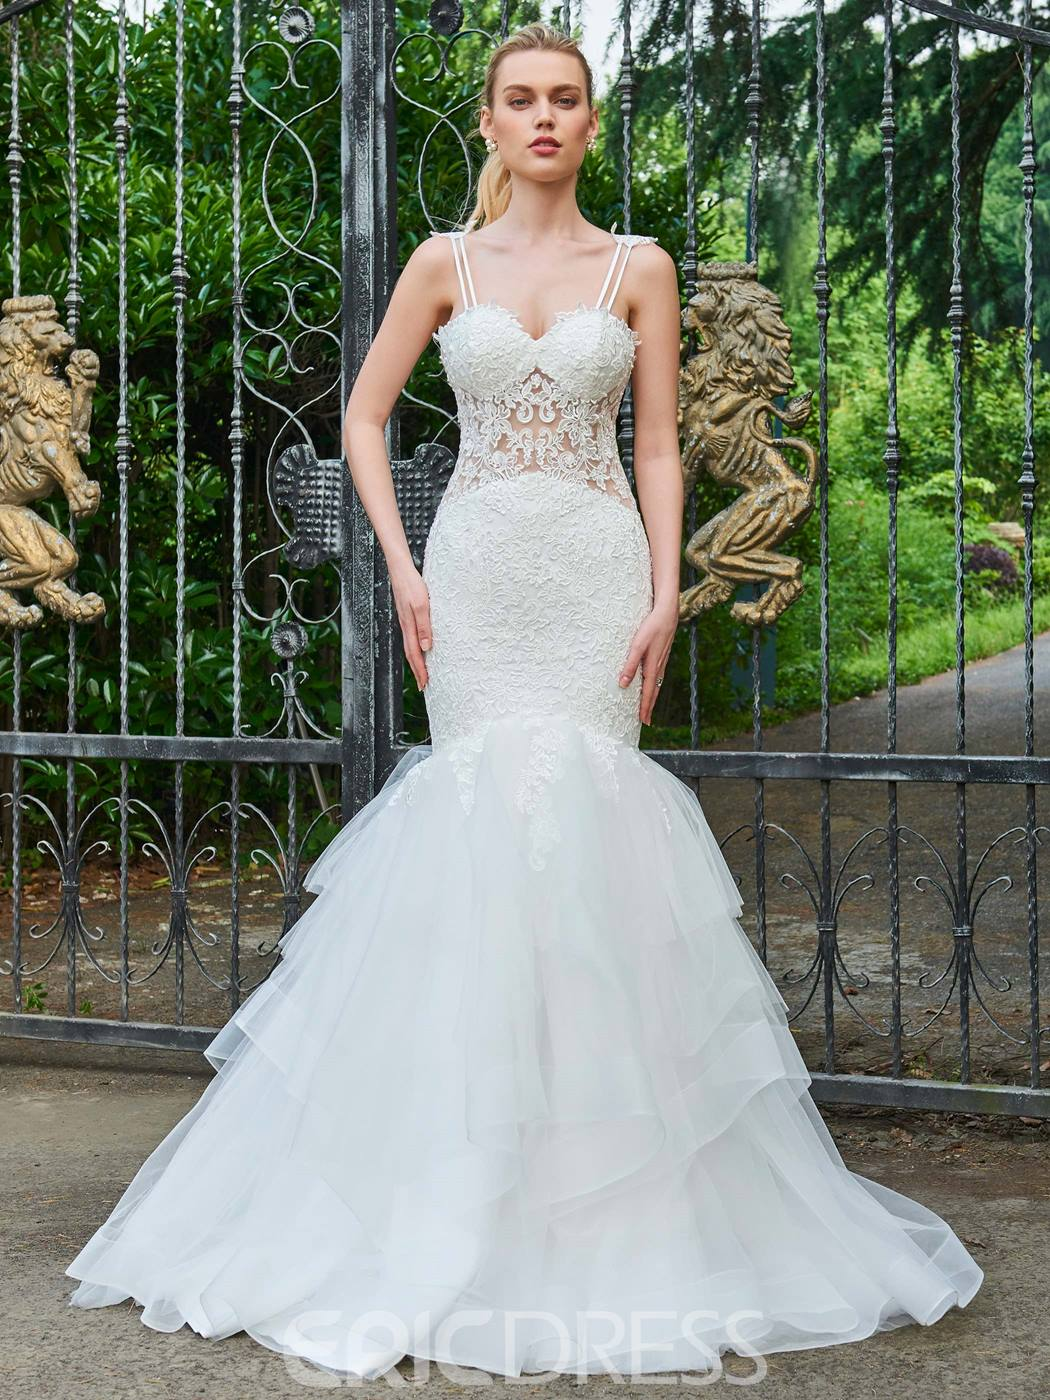 Ericdress Spaghetti Straps Mermaid Appliques Tulle Wedding Dress